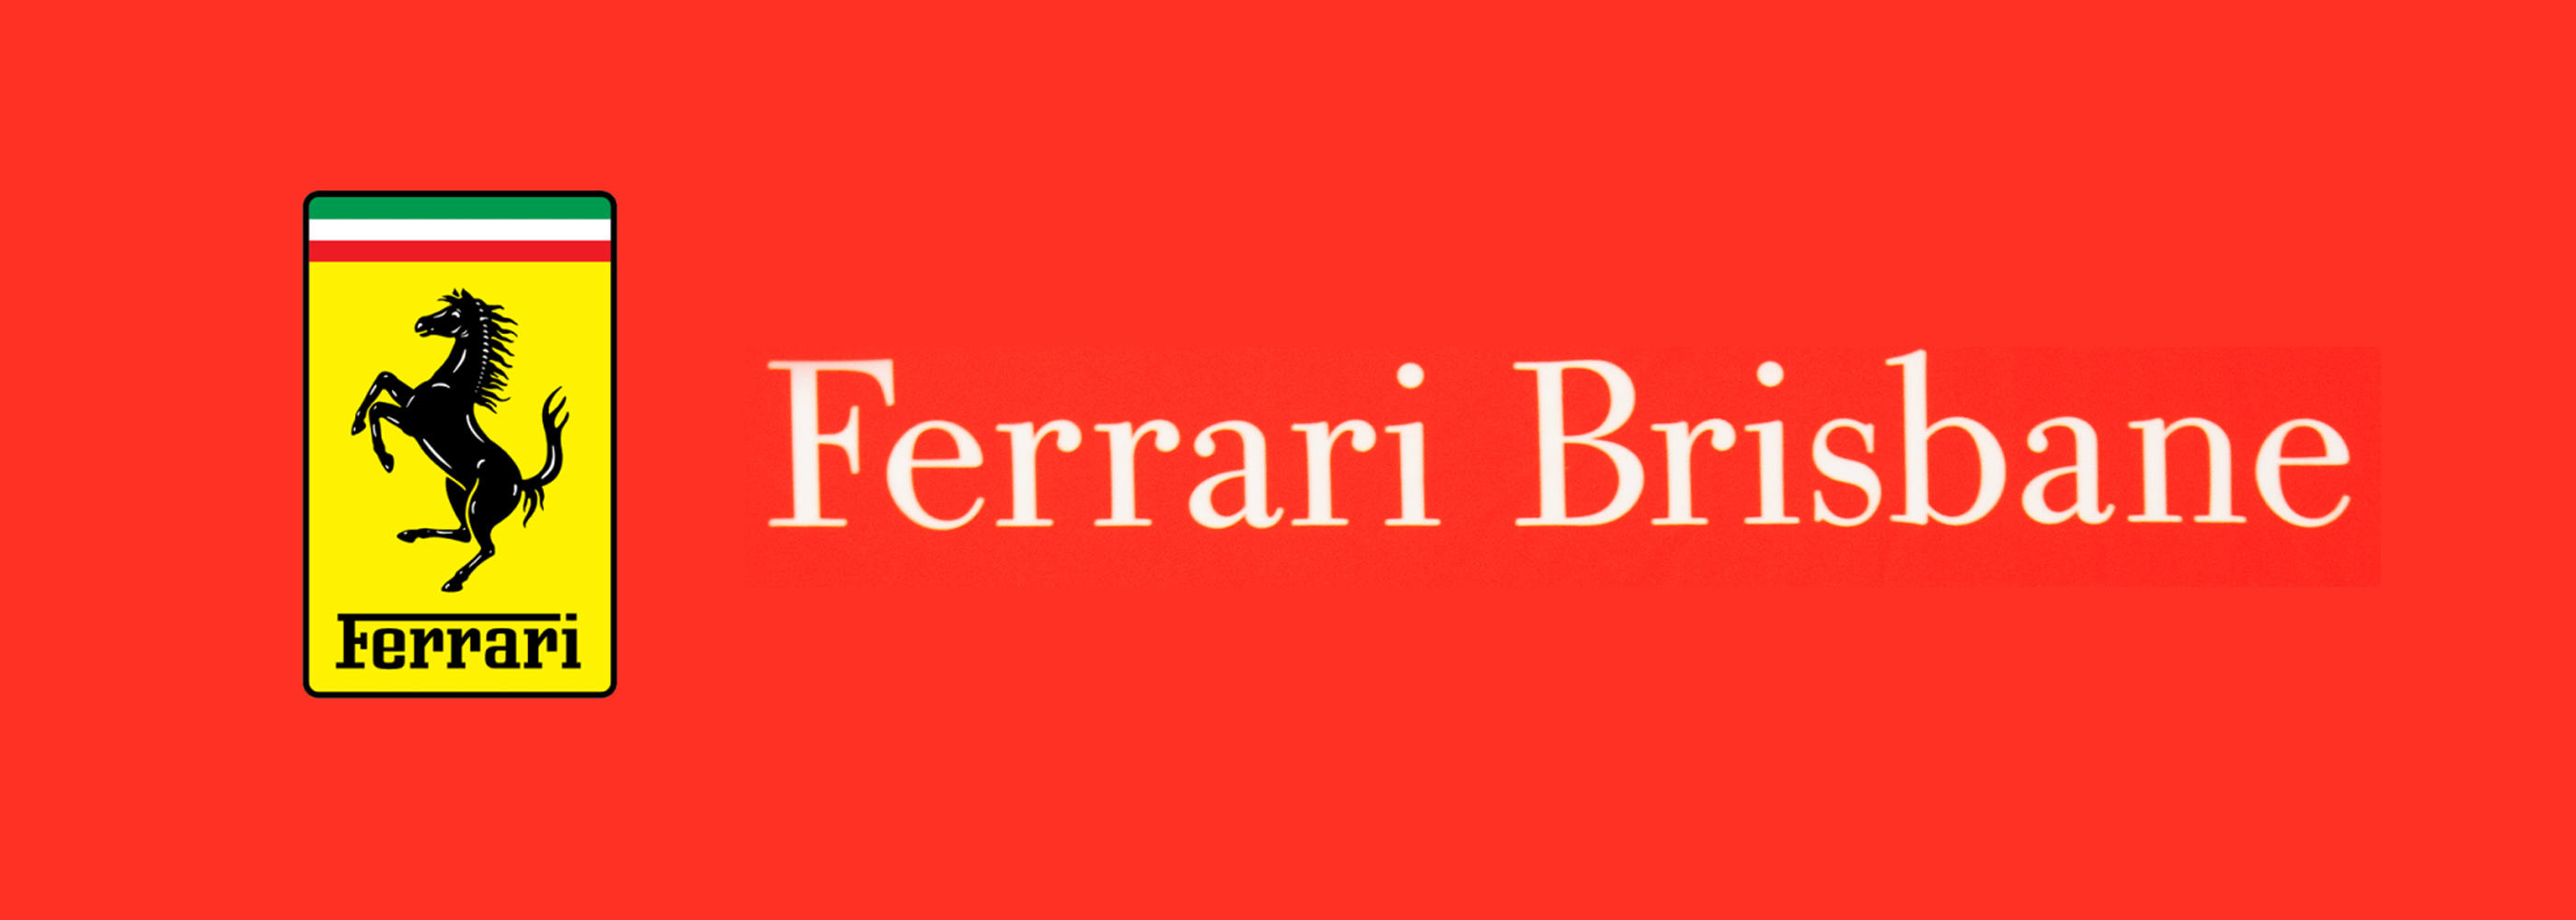 Brisbane_Event_Photography-Ferrari_1